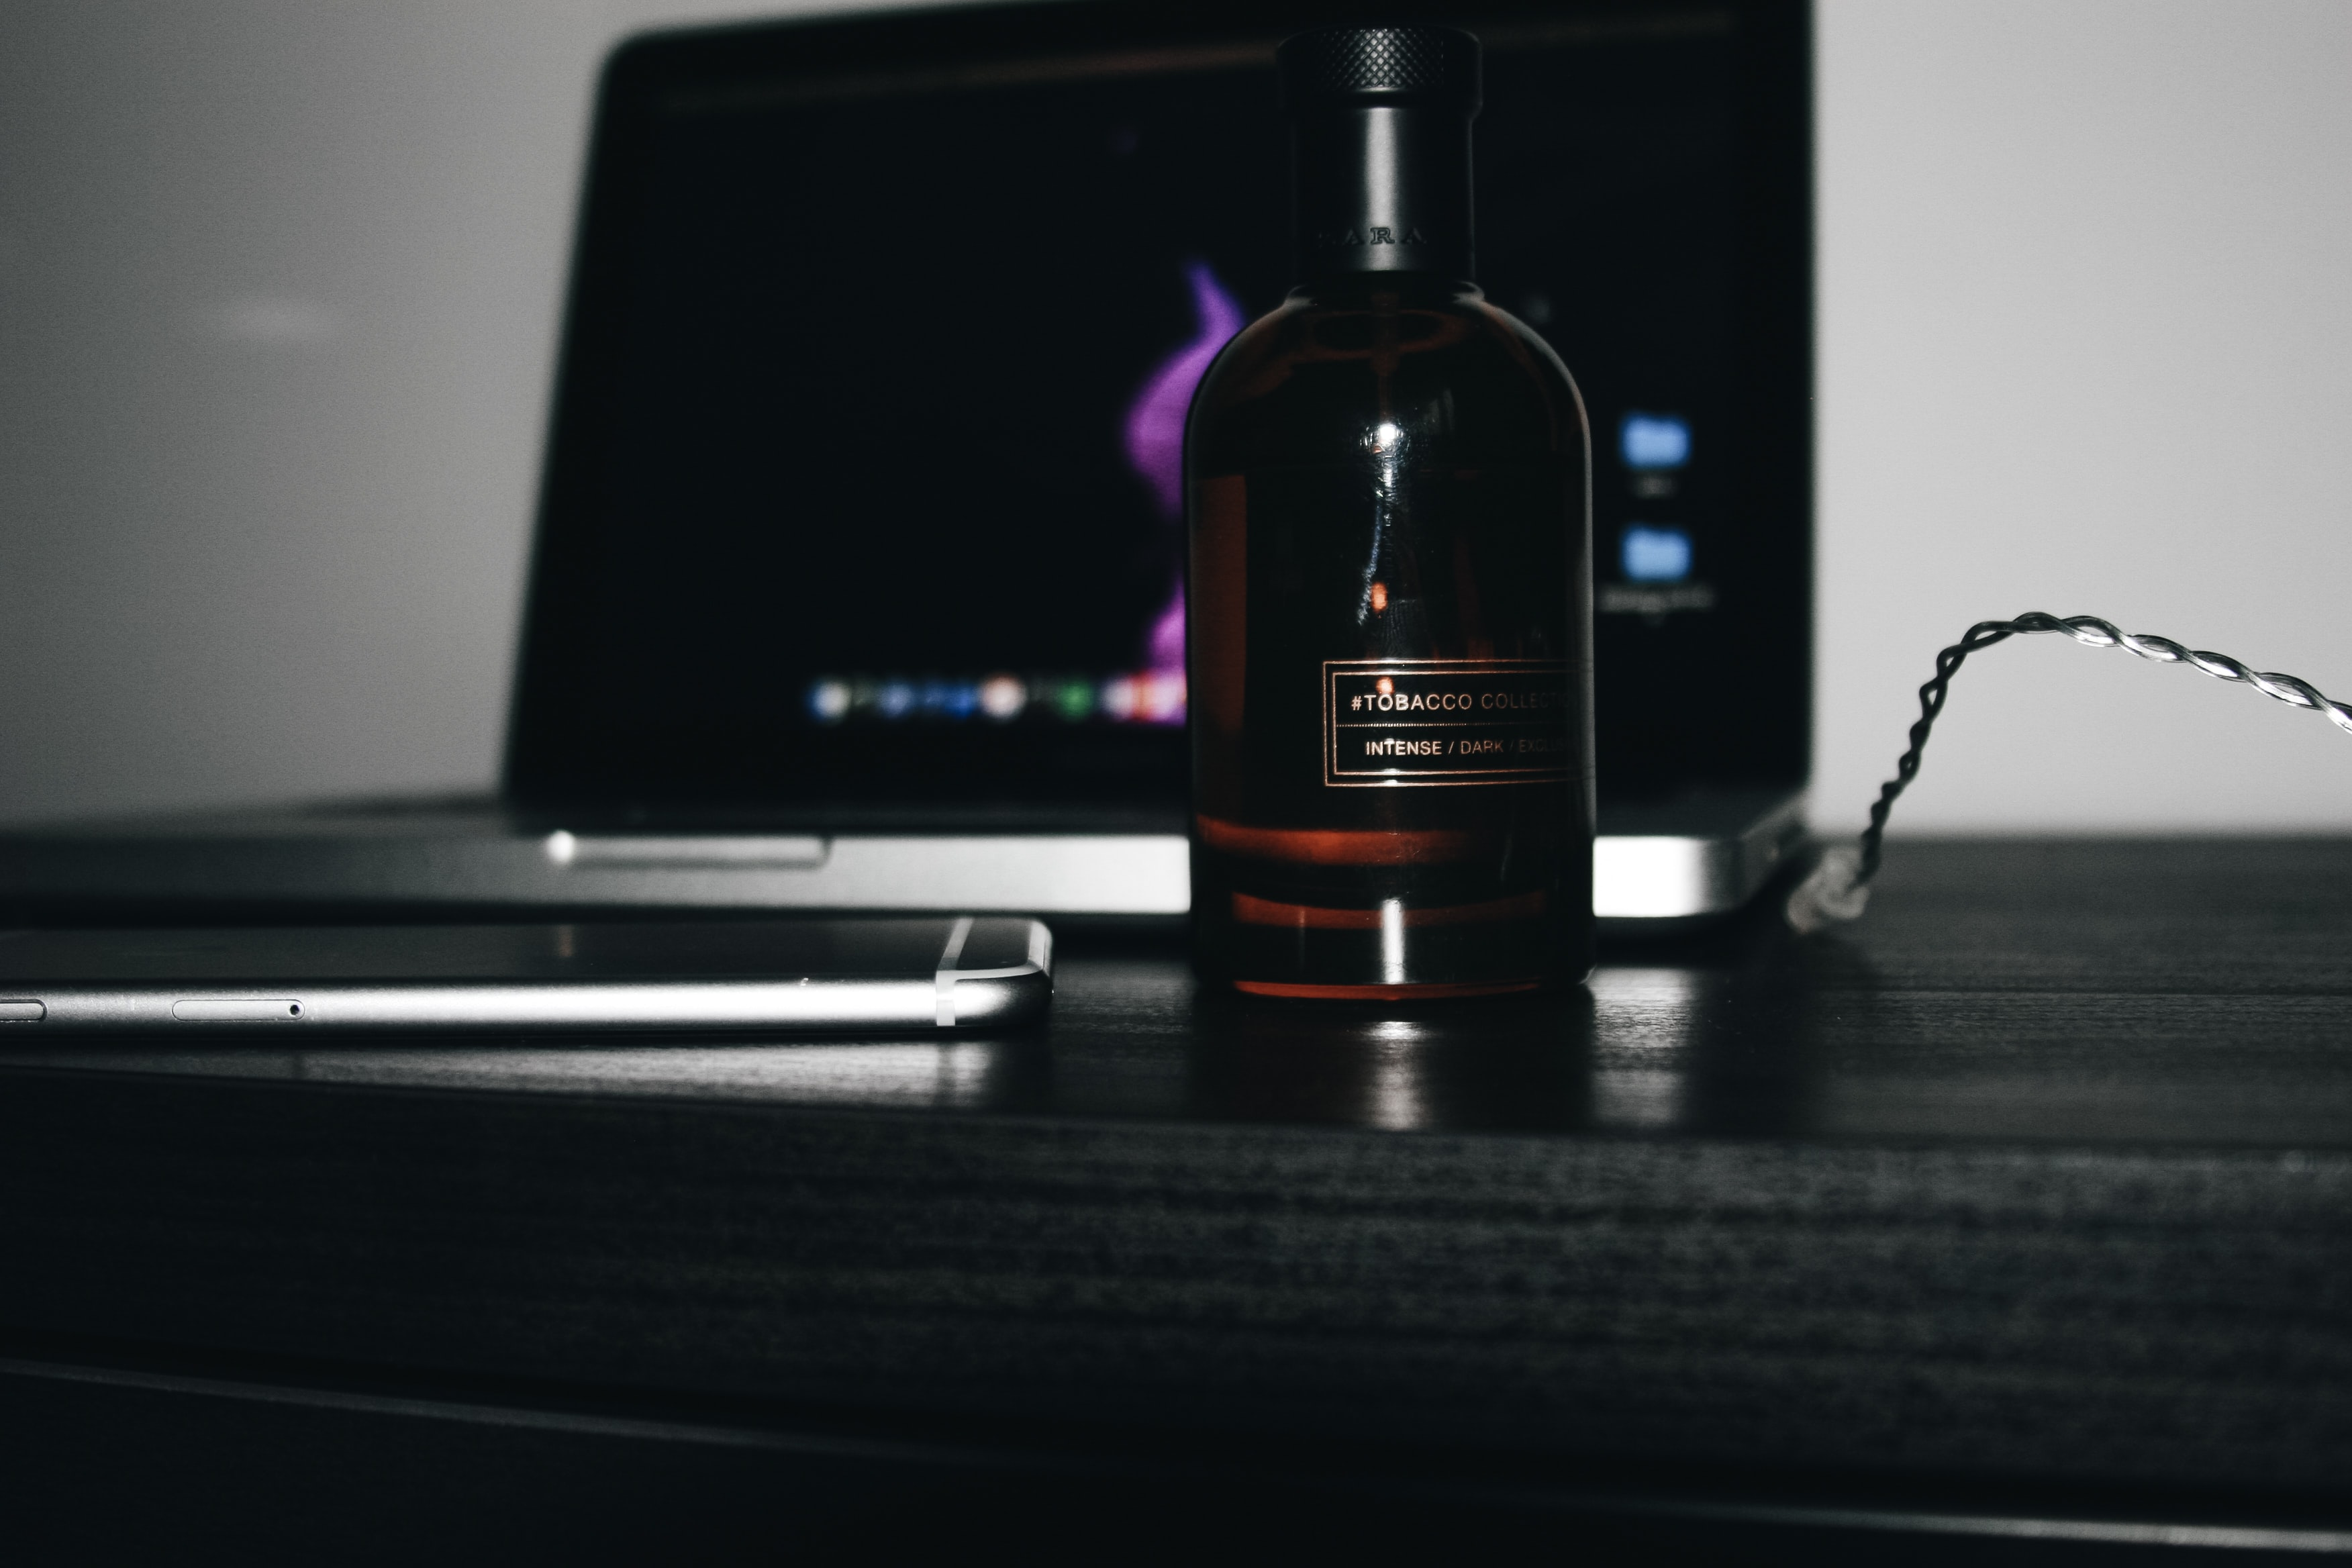 black glass bottle beside smartphone and laptop